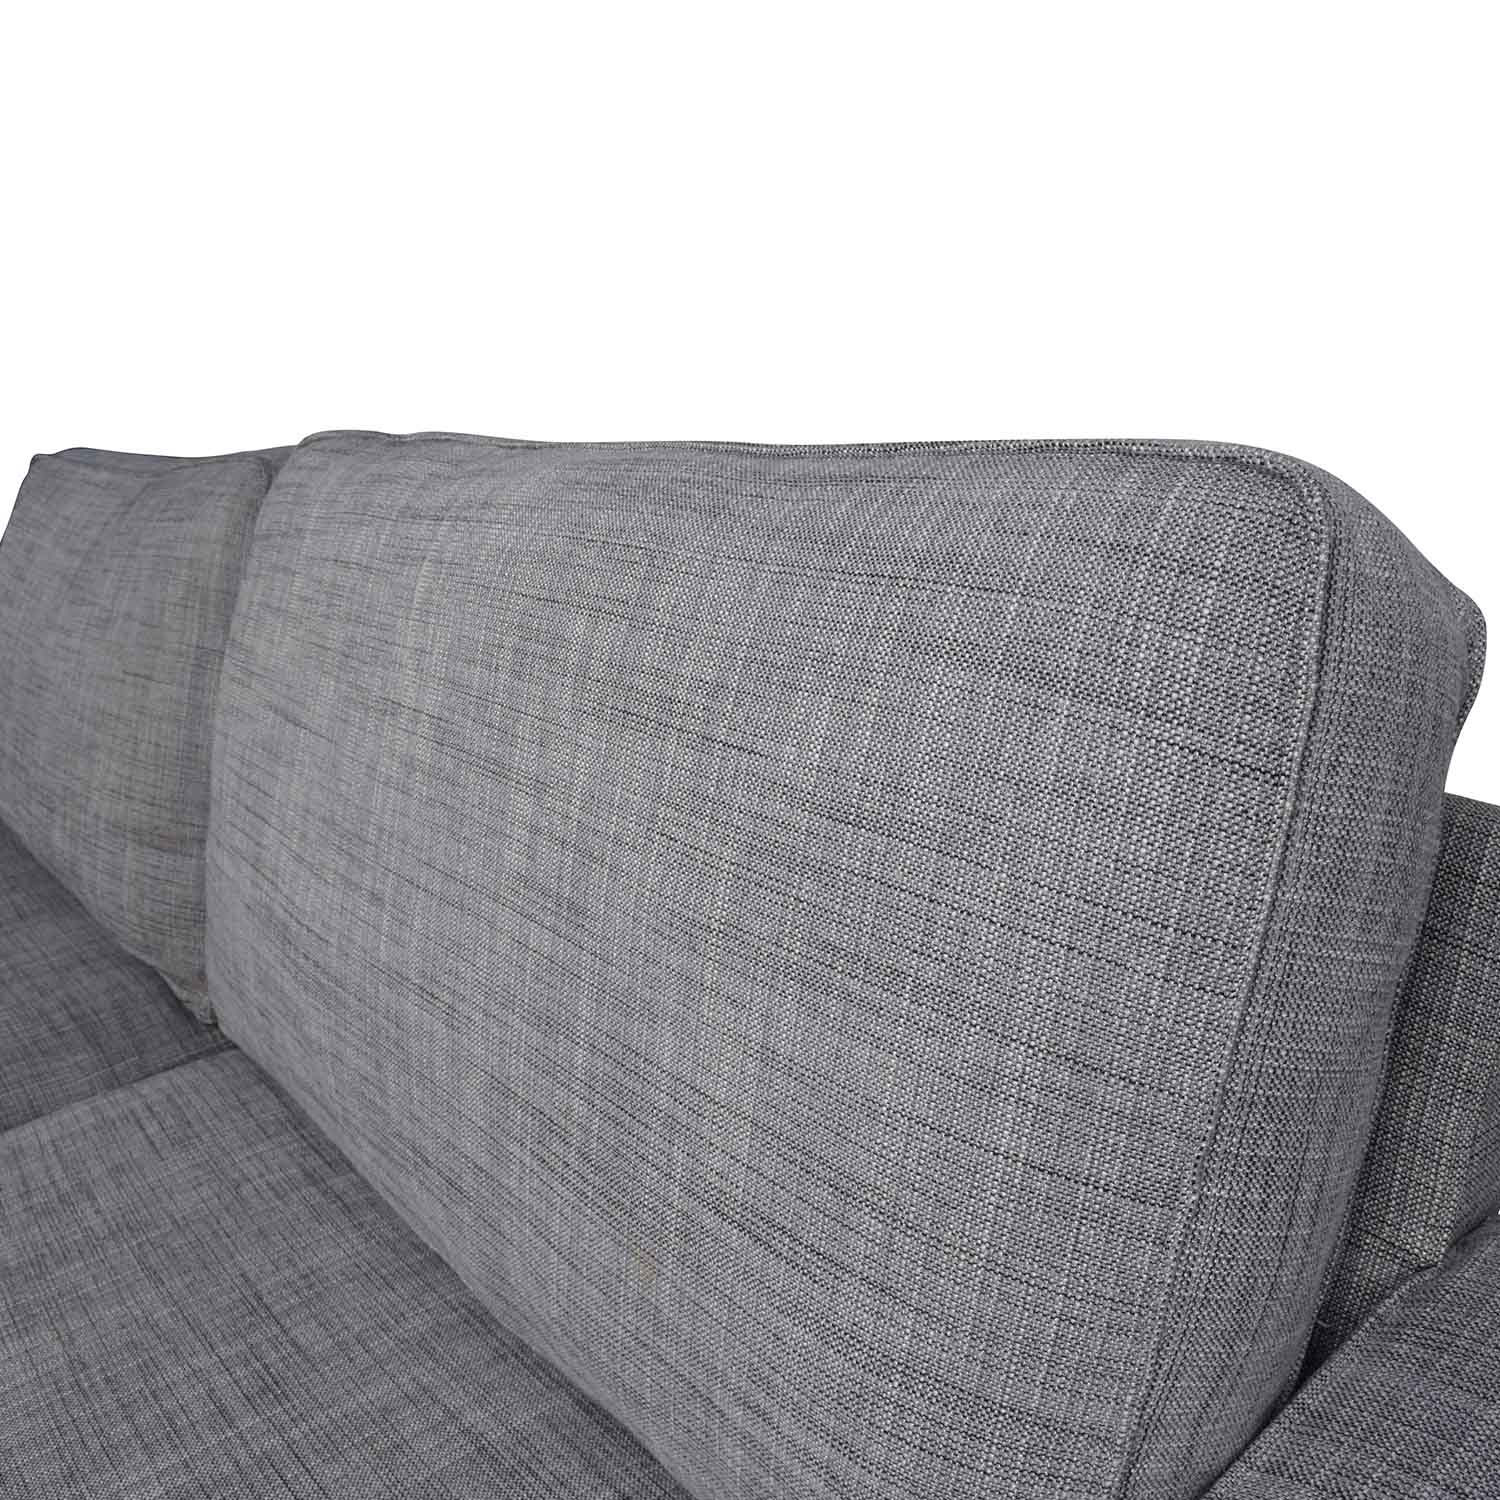 Swell Kivik Sofa Is The Ikea Aesthetic Comfy Or Creepy The Pabps2019 Chair Design Images Pabps2019Com